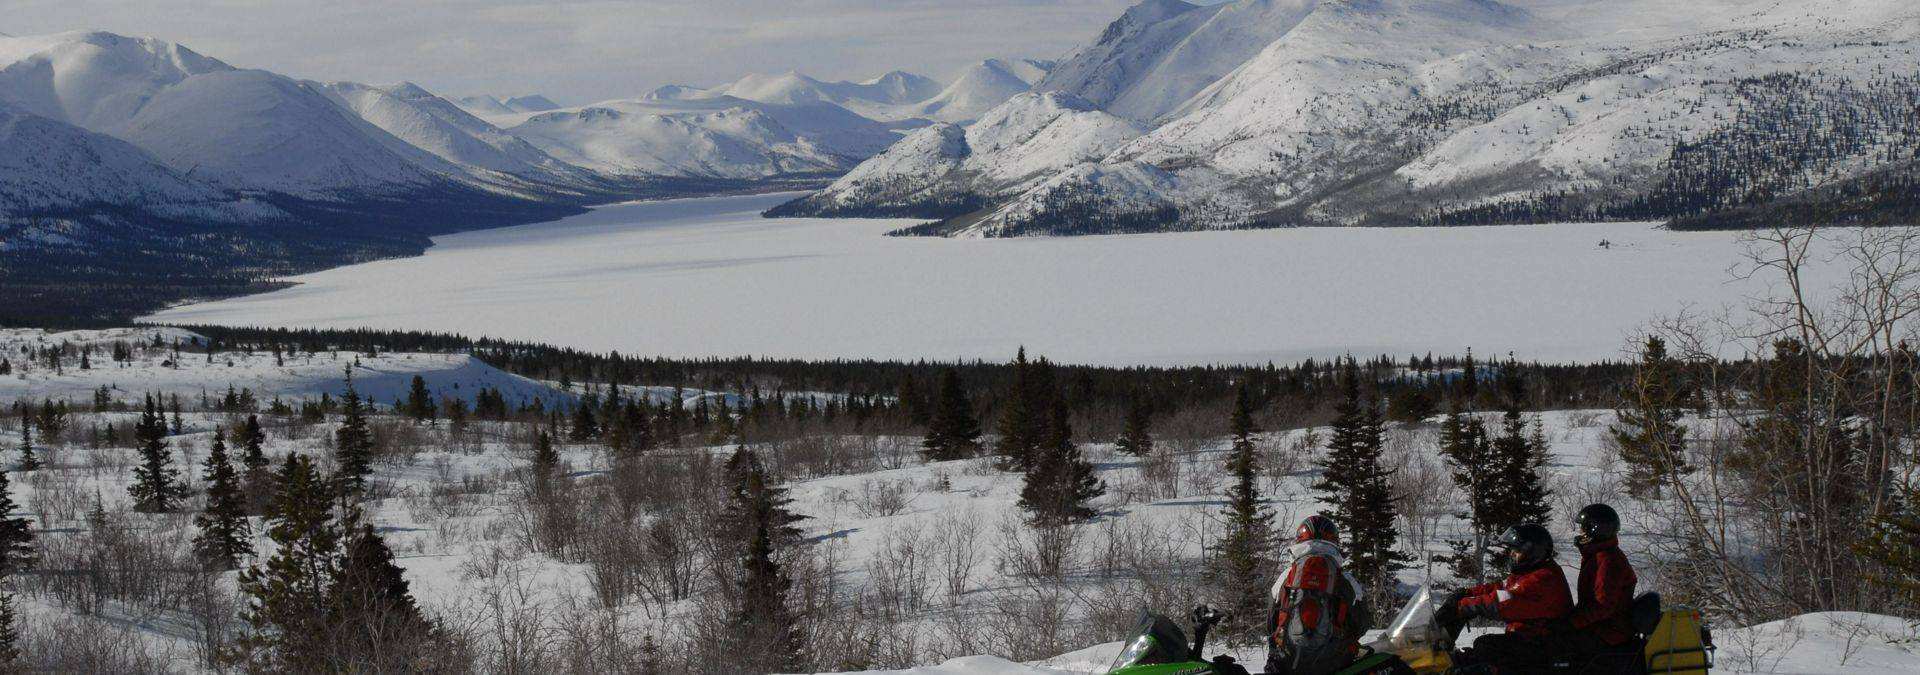 Snowmobiling Photo Credits Arctic Range Adventure Ltd